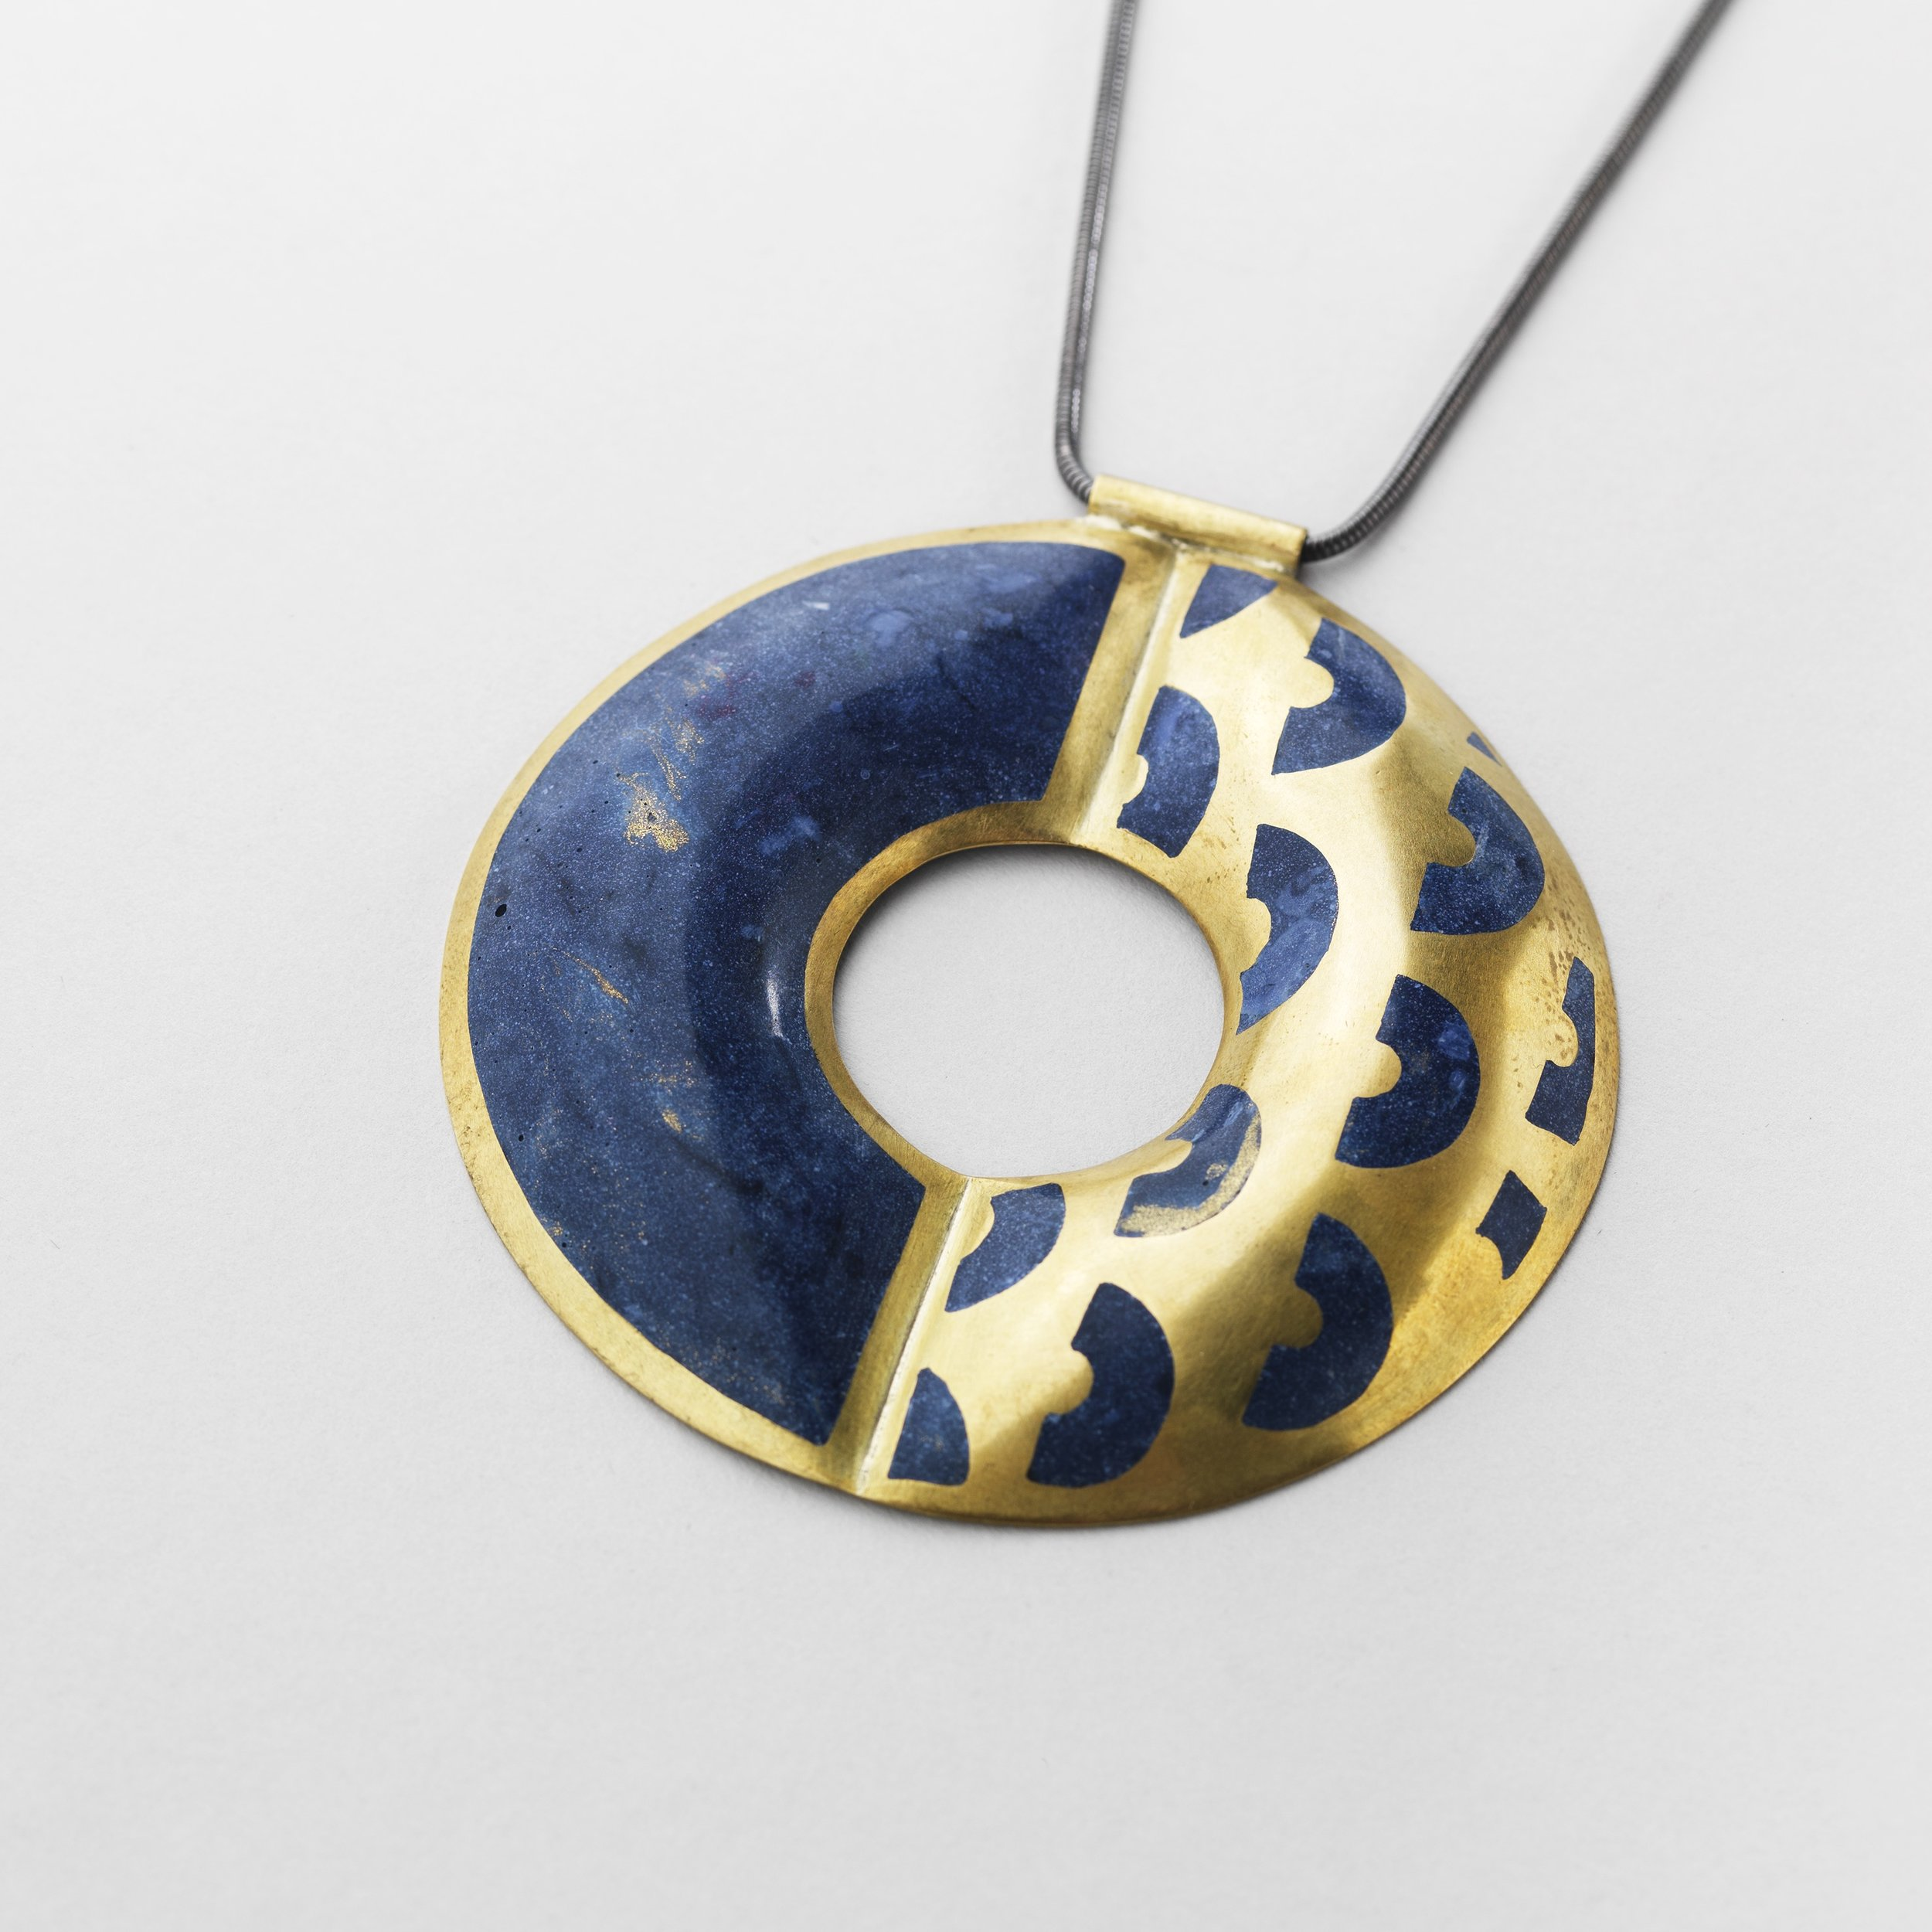 5. C.Hegney, Ultramarine Adjustable Pendant, brass, bio-resin, on oxidised silver chain (1).jpg